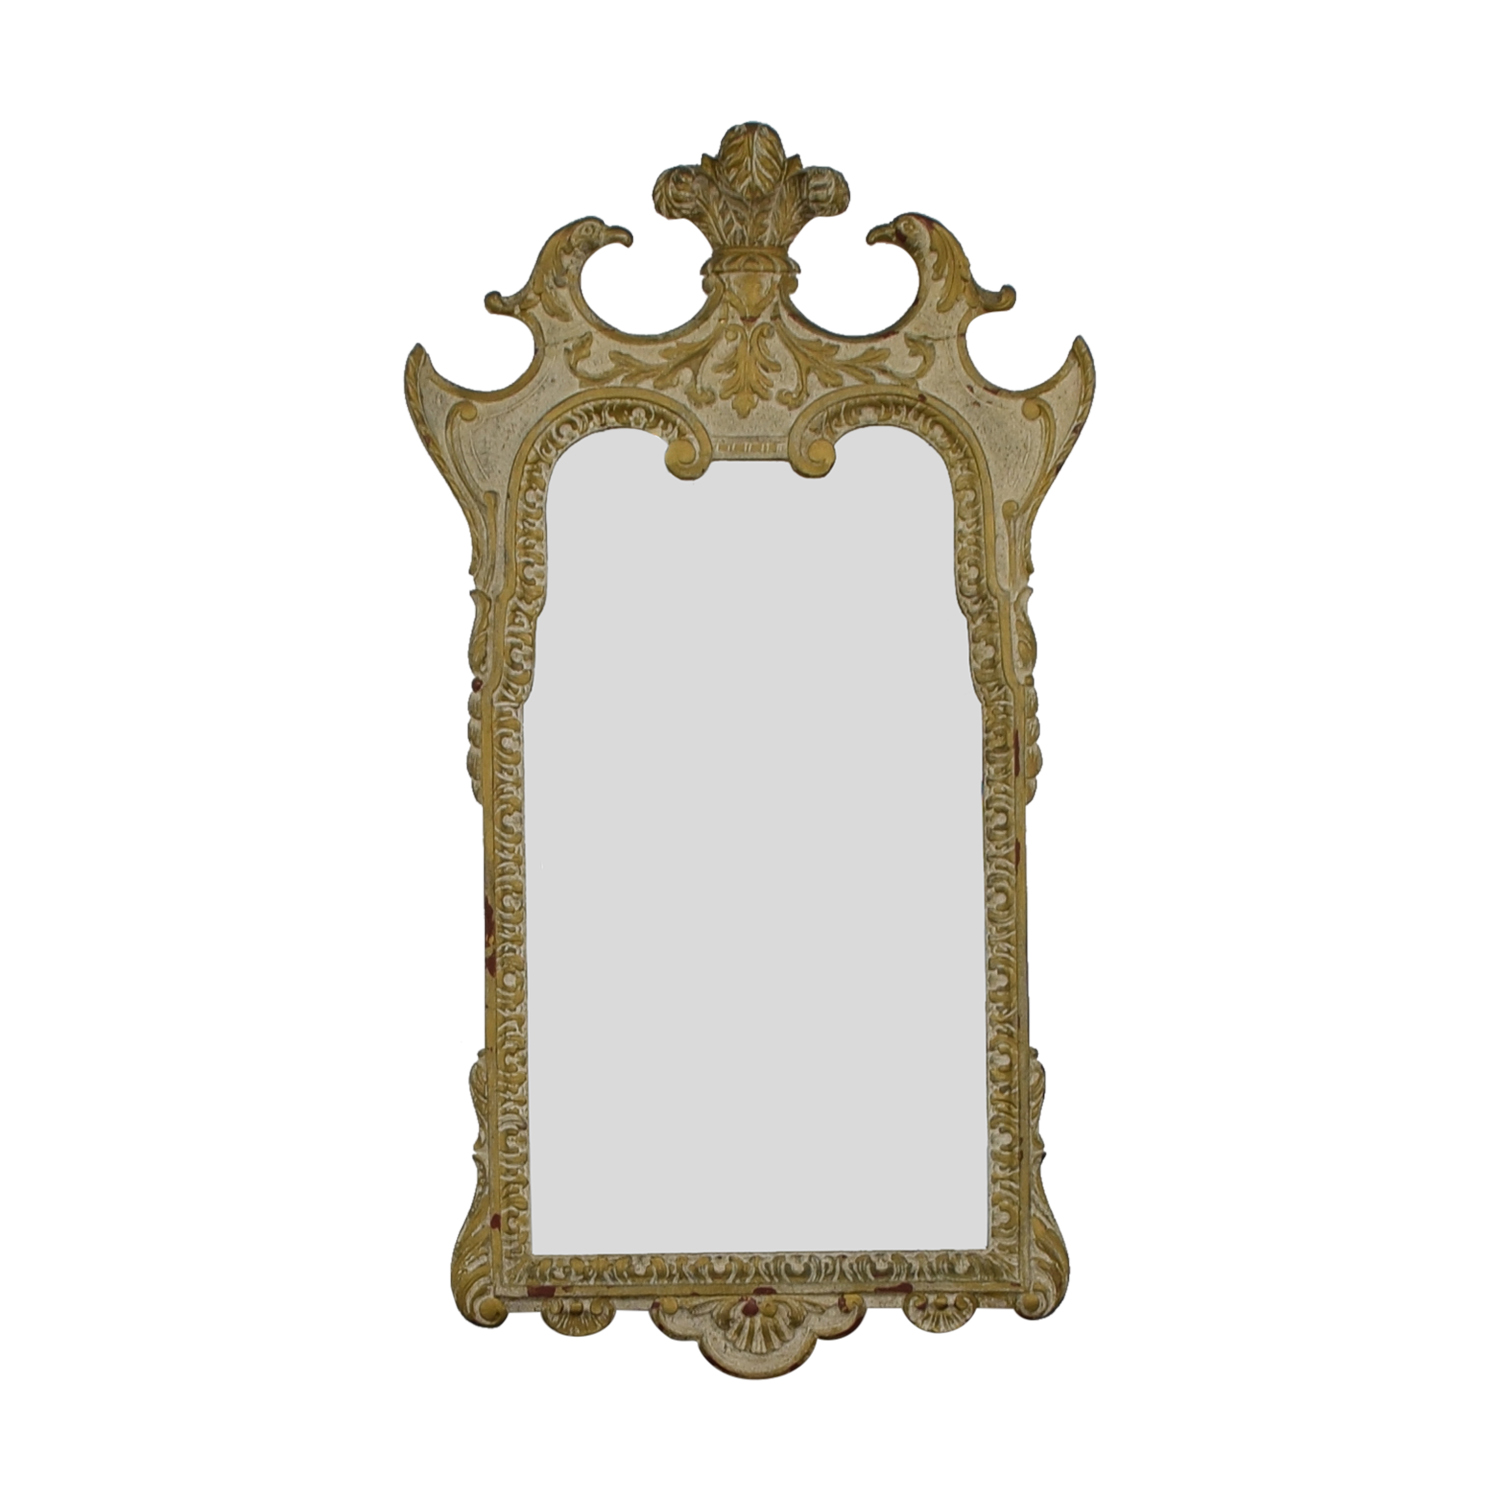 Distressed Carved Wood Framed Wall Mirror Decor